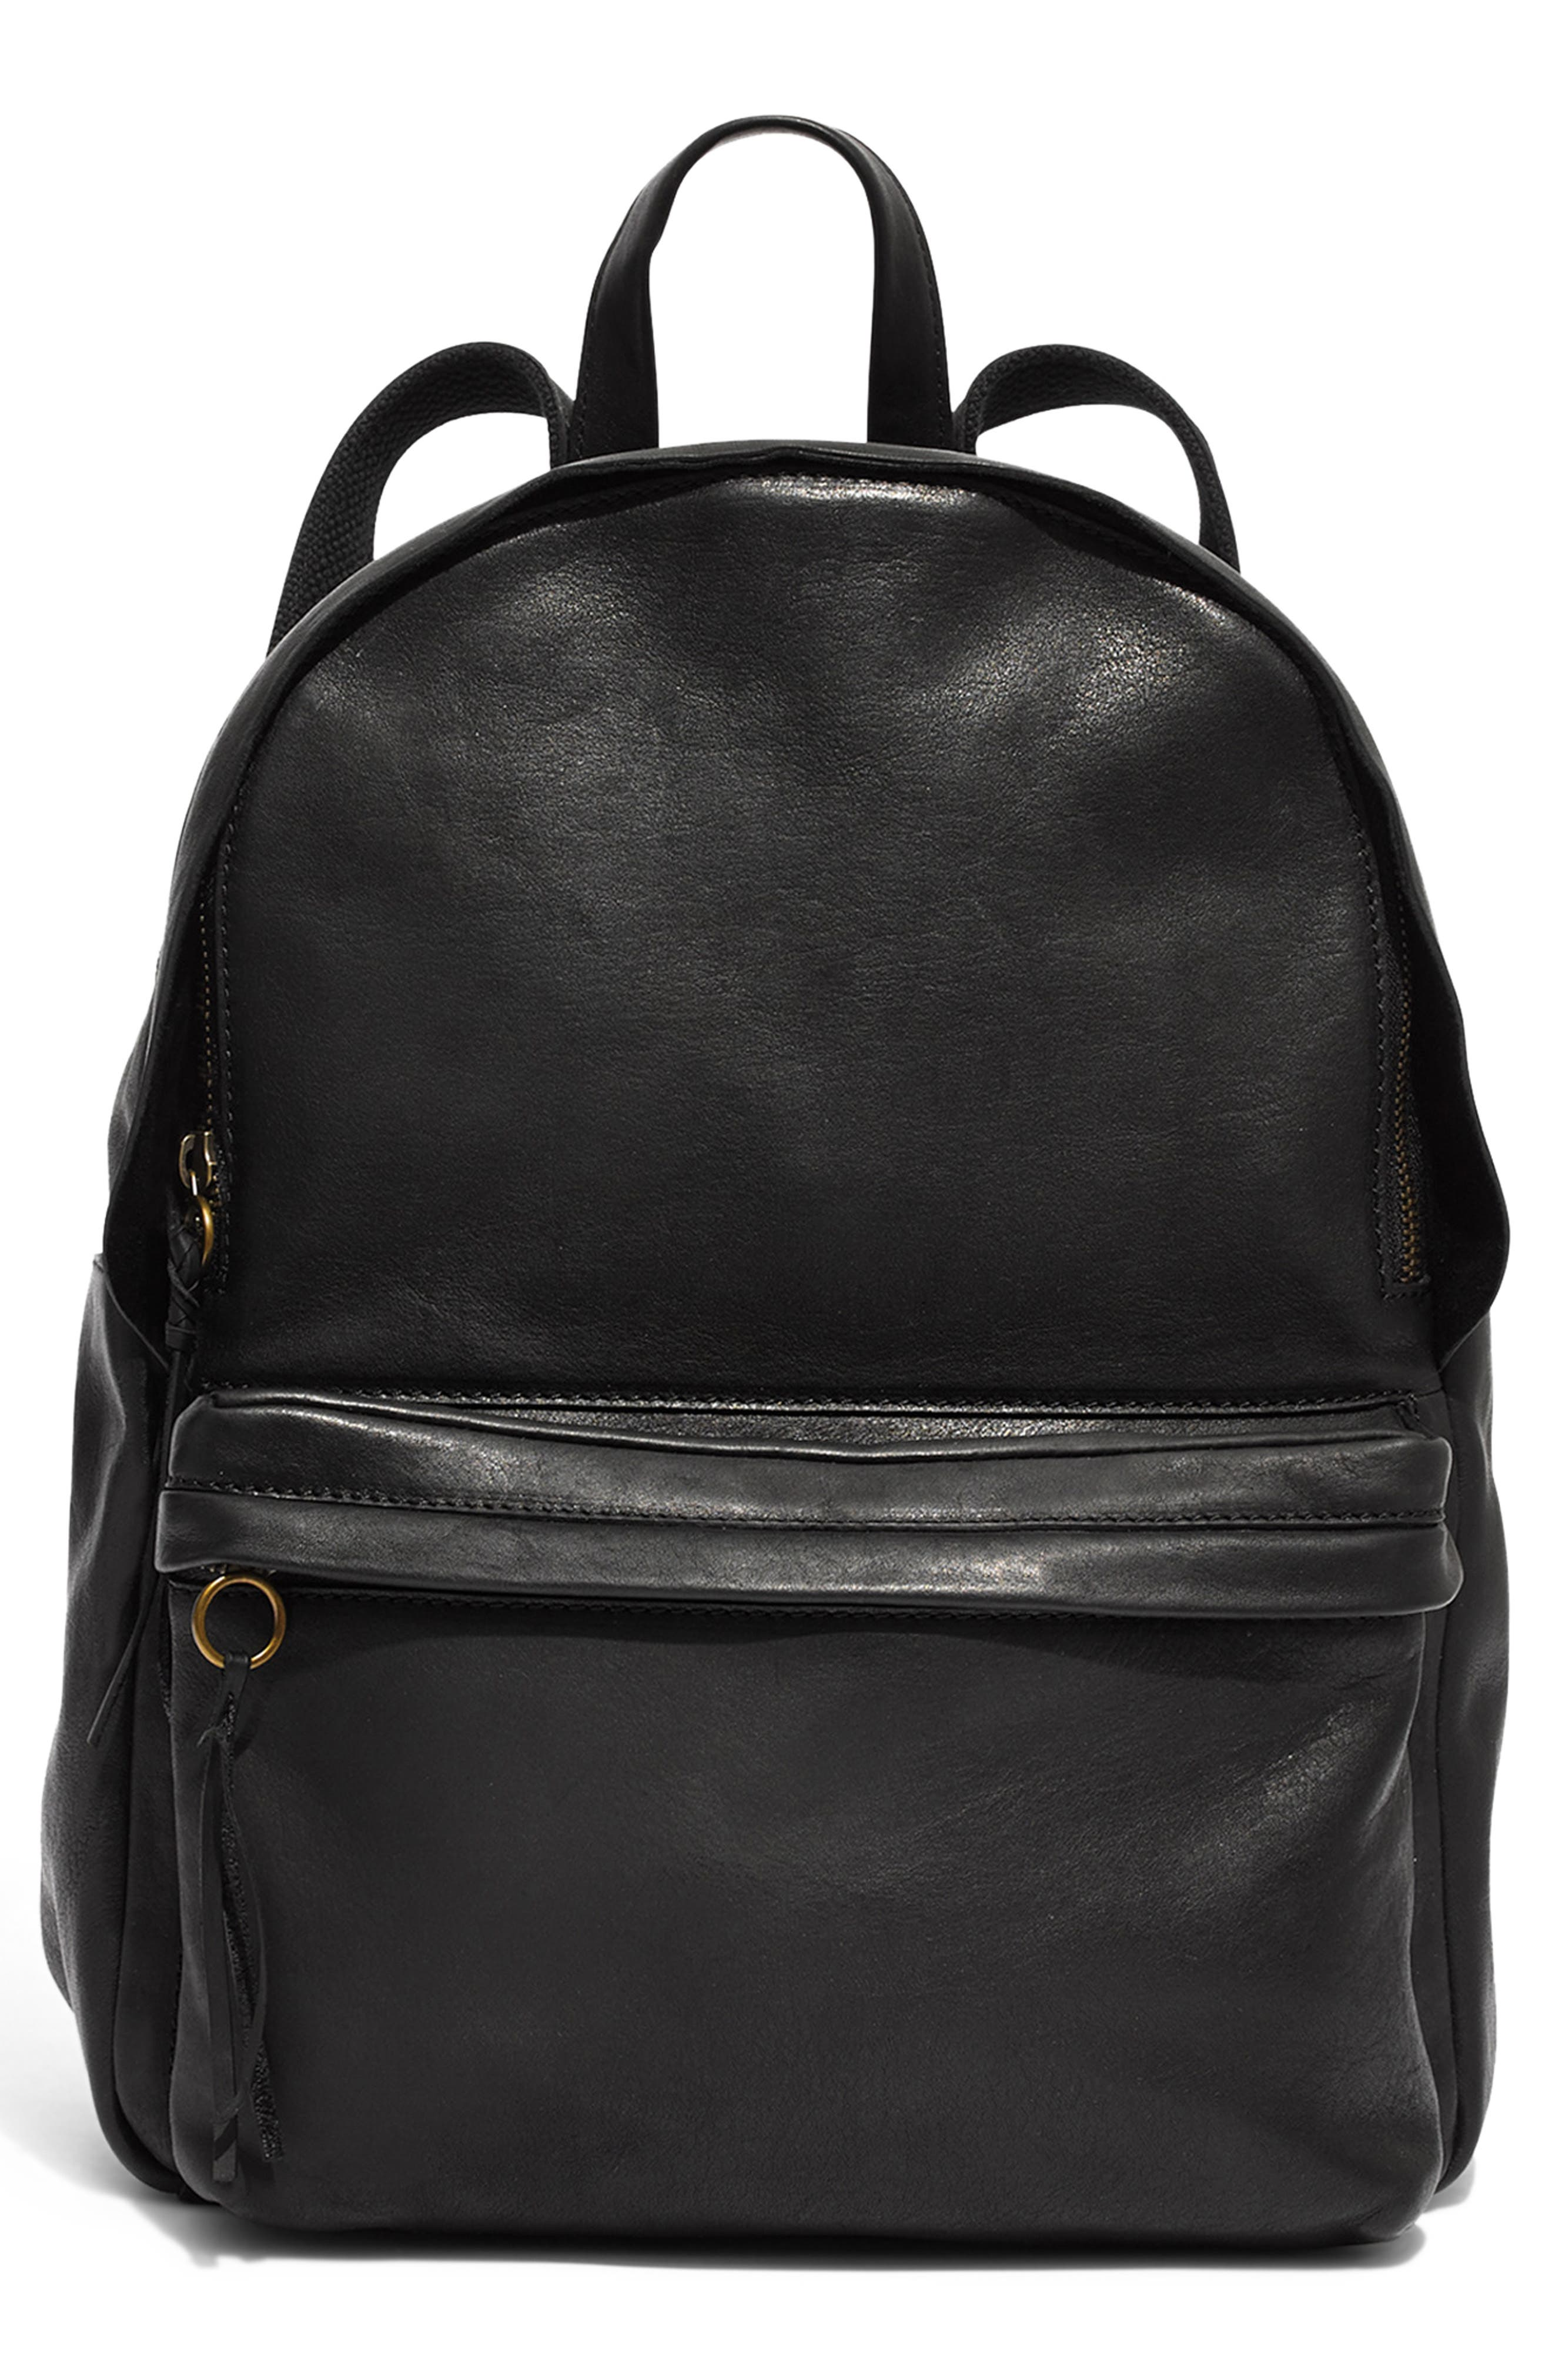 MADEWELL Lorimer Leather Backpack, Main, color, TRUE BLACK